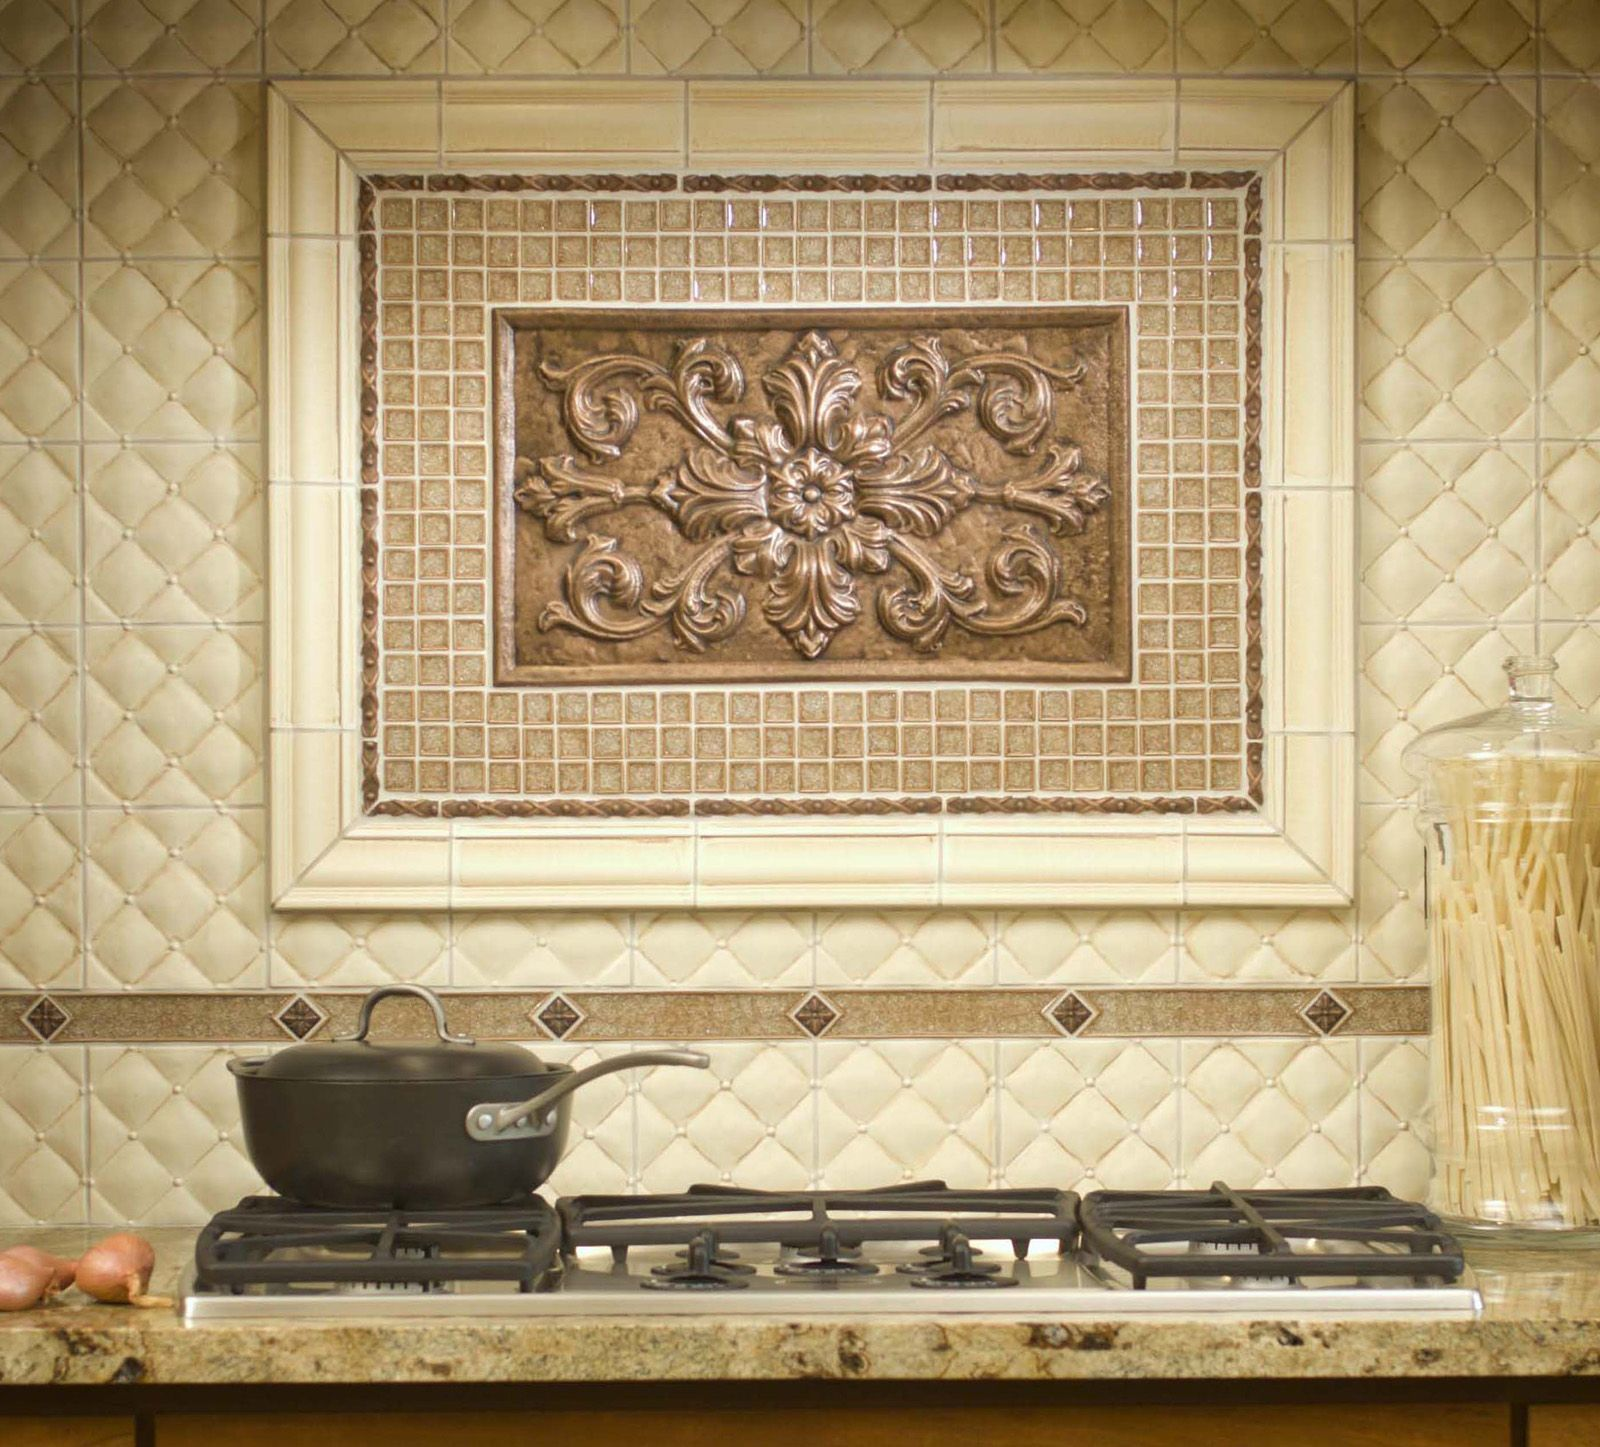 Kitchen Tiles Edmonton sonoma backsplash | custom blend of handcrafted tile from sonoma